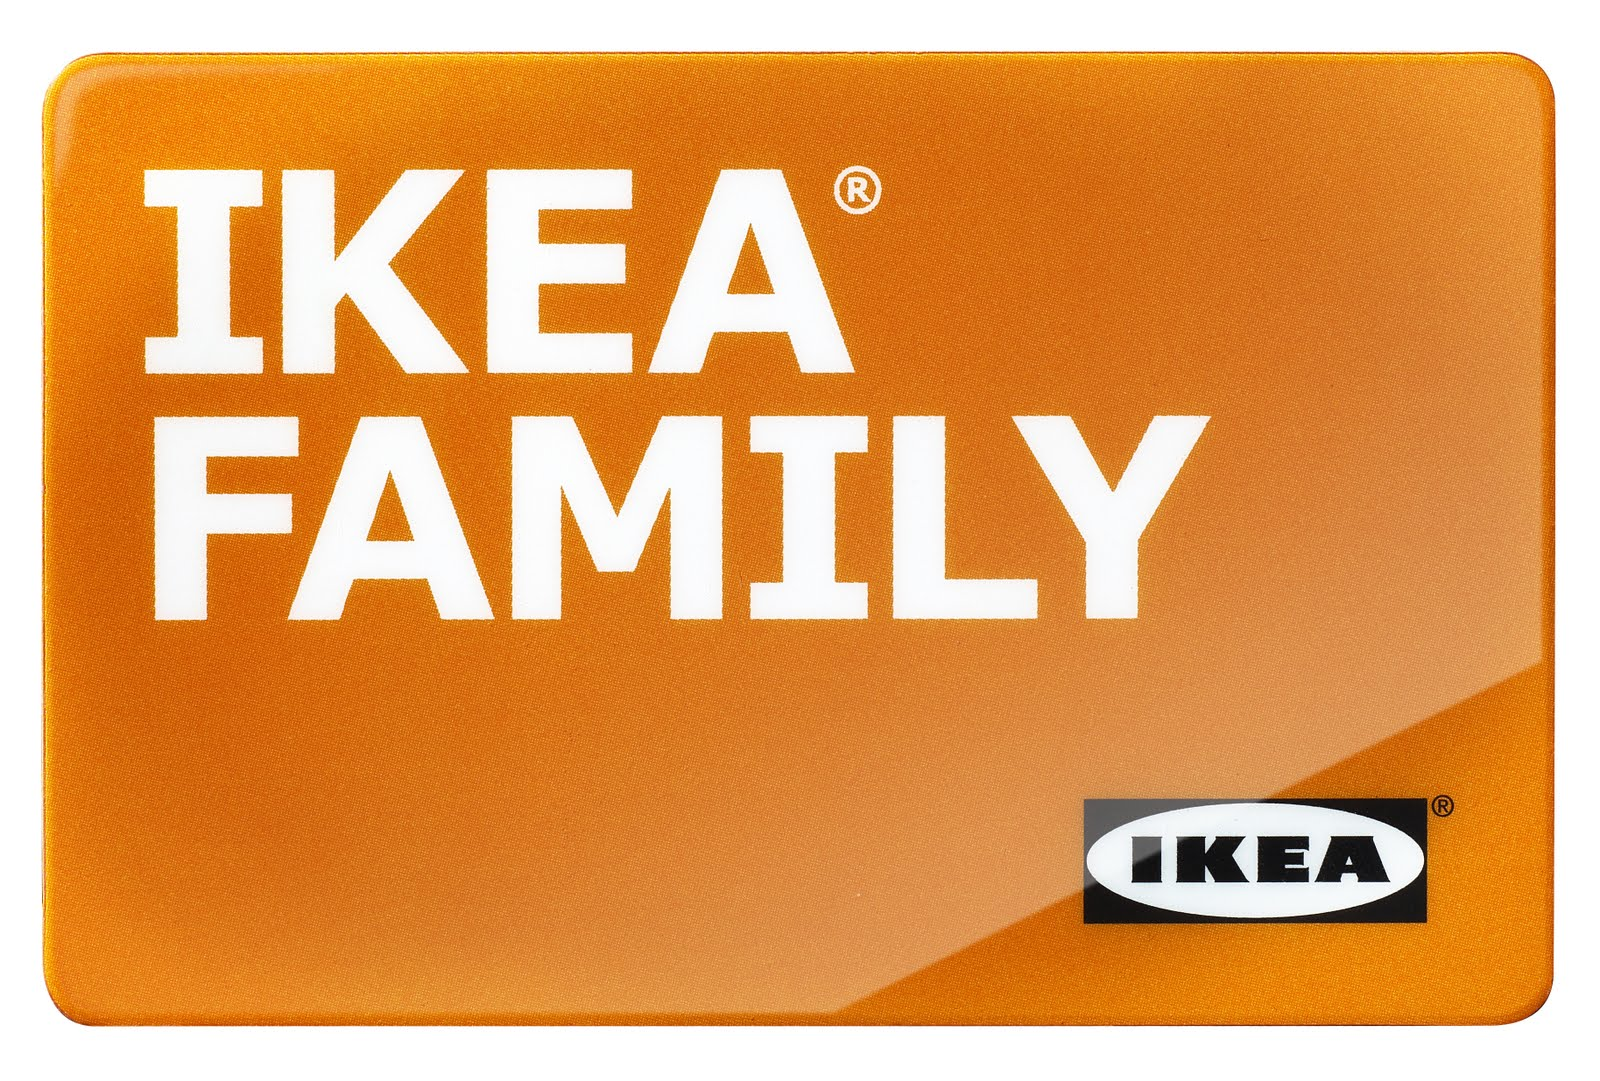 ikea family a new free loyalty program frugal philly mom blog deals events calendar tips. Black Bedroom Furniture Sets. Home Design Ideas